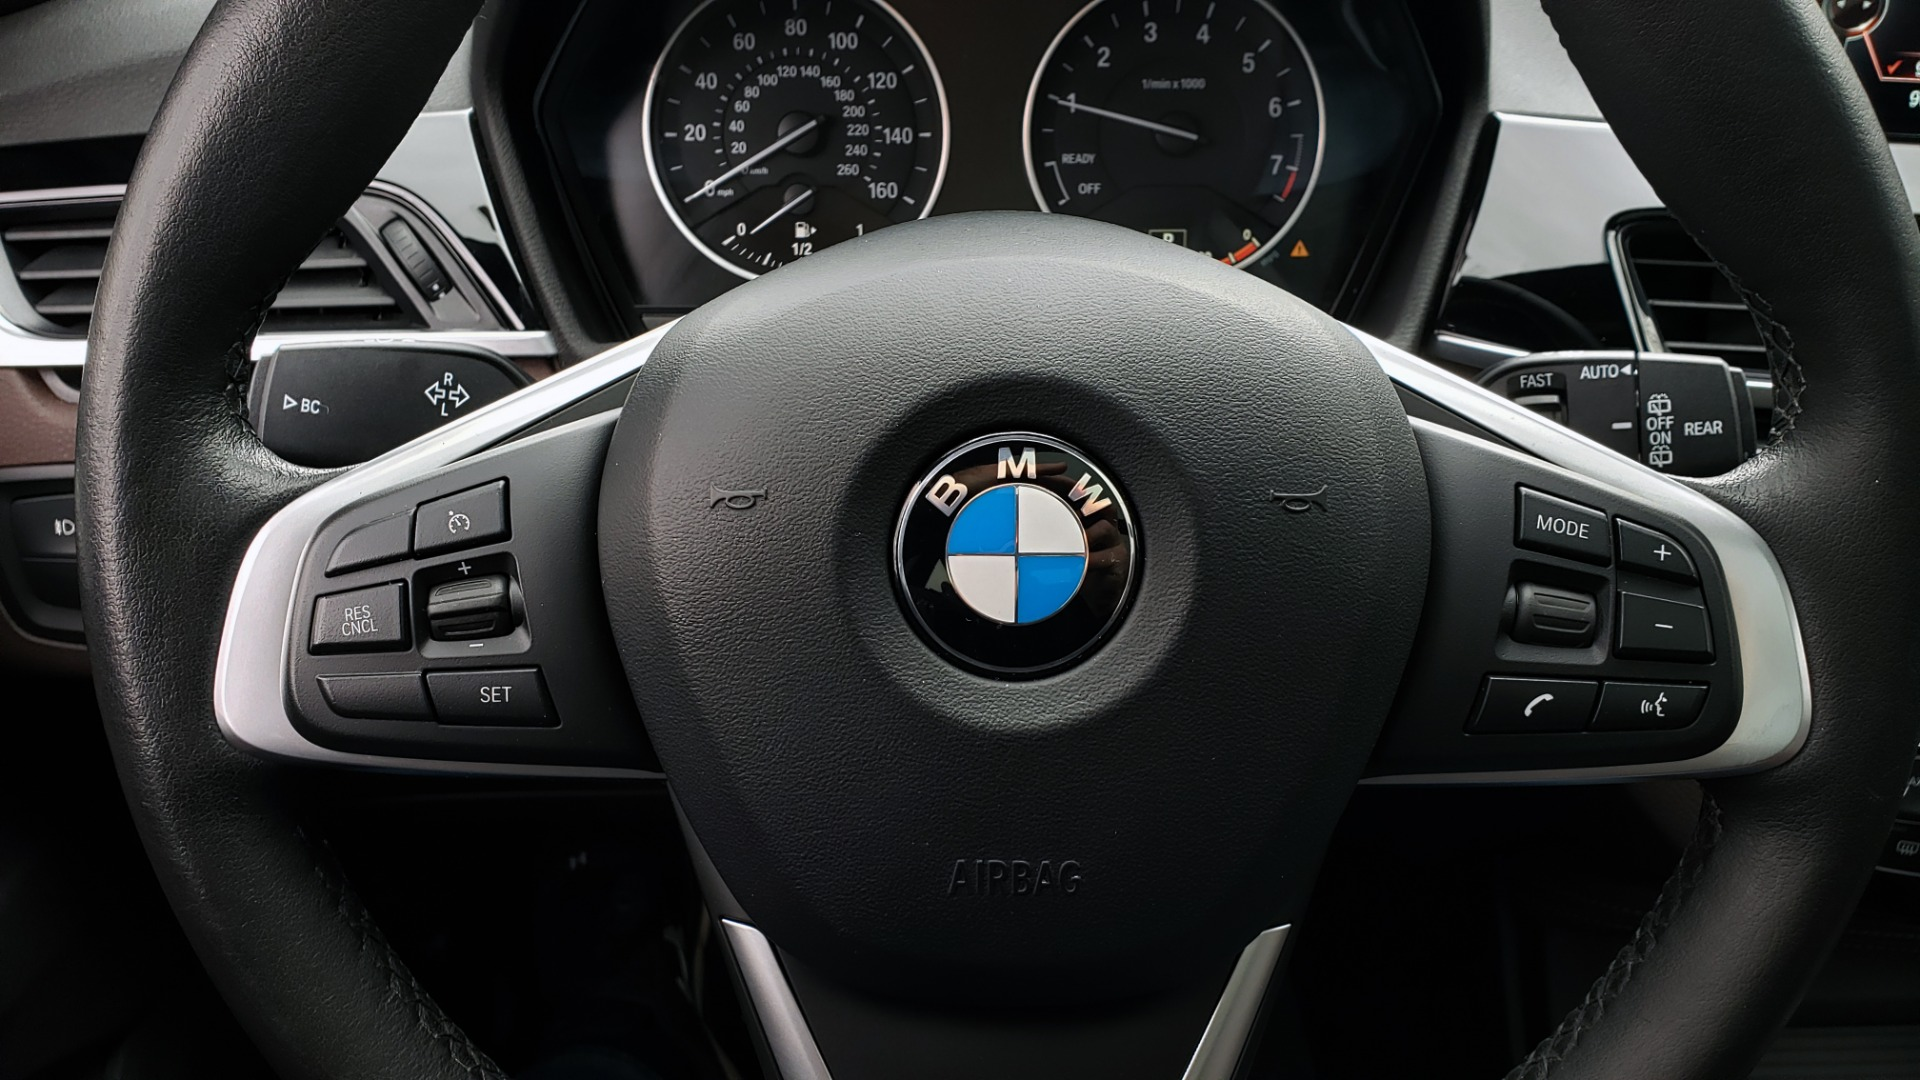 Used 2017 BMW X1 XDRIVE28I / PREM / TECH / DRVR ASST / COLD WTHR / REARVIEW for sale Sold at Formula Imports in Charlotte NC 28227 38